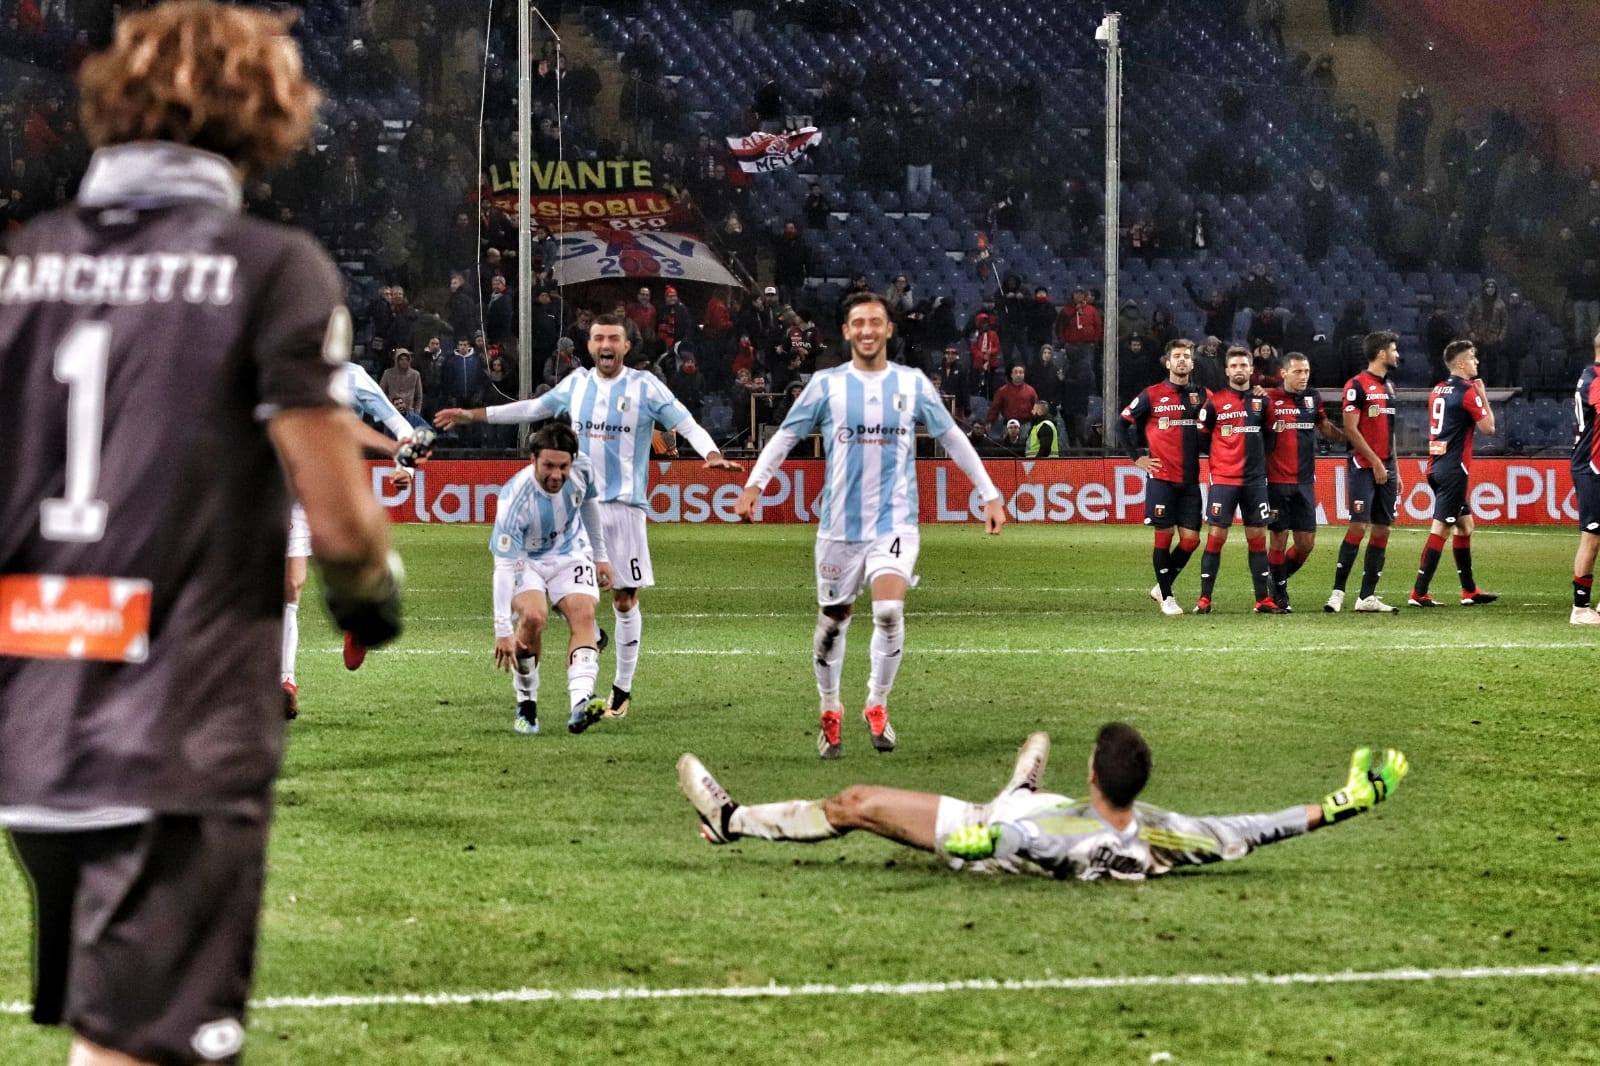 Genoa Entella Virtus Entella